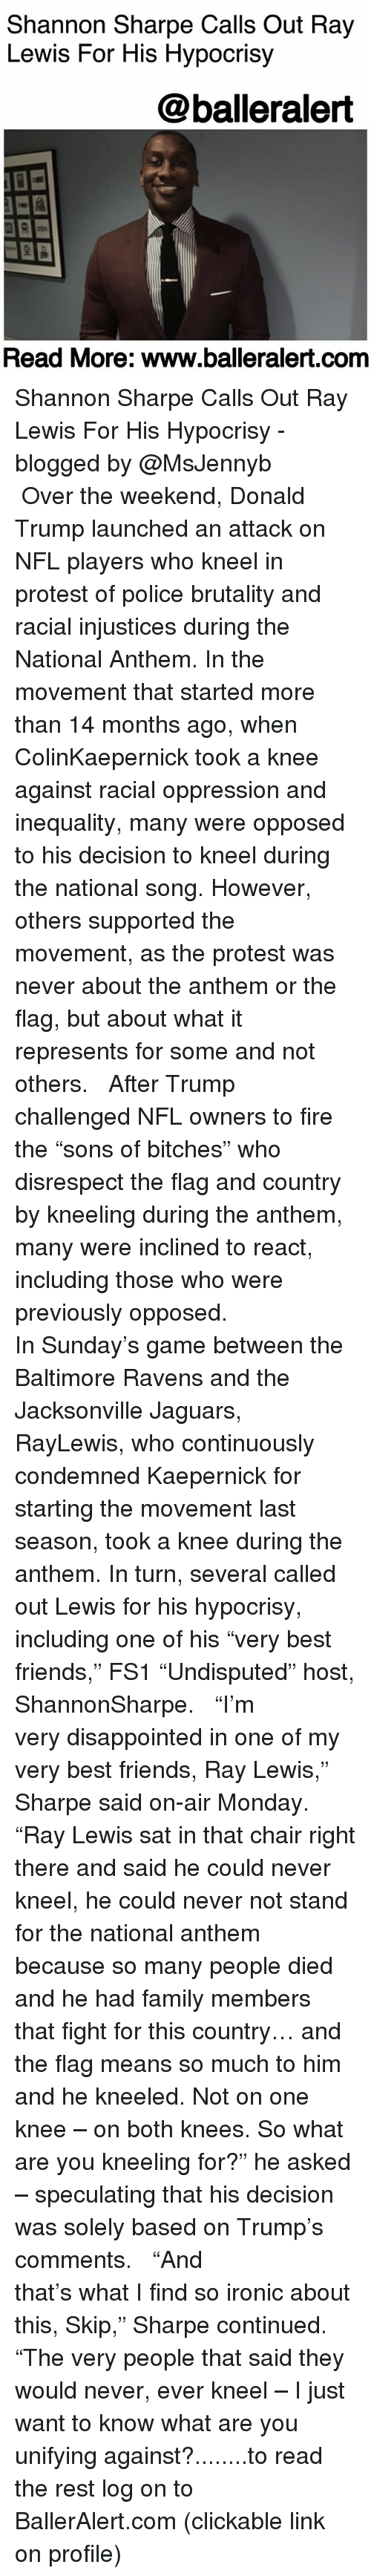 "Baltimore Ravens: Shannon Sharpe Calls Out Ray  Lewis For His Hypocrisy  @balleralert  Read More: www.balleralert.conm Shannon Sharpe Calls Out Ray Lewis For His Hypocrisy - blogged by @MsJennyb ⠀⠀⠀⠀⠀⠀⠀ ⠀⠀⠀⠀⠀⠀⠀ Over the weekend, Donald Trump launched an attack on NFL players who kneel in protest of police brutality and racial injustices during the National Anthem. In the movement that started more than 14 months ago, when ColinKaepernick took a knee against racial oppression and inequality, many were opposed to his decision to kneel during the national song. However, others supported the movement, as the protest was never about the anthem or the flag, but about what it represents for some and not others. ⠀⠀⠀⠀⠀⠀⠀ ⠀⠀⠀⠀⠀⠀⠀ After Trump challenged NFL owners to fire the ""sons of bitches"" who disrespect the flag and country by kneeling during the anthem, many were inclined to react, including those who were previously opposed. ⠀⠀⠀⠀⠀⠀⠀ ⠀⠀⠀⠀⠀⠀⠀ In Sunday's game between the Baltimore Ravens and the Jacksonville Jaguars, RayLewis, who continuously condemned Kaepernick for starting the movement last season, took a knee during the anthem. In turn, several called out Lewis for his hypocrisy, including one of his ""very best friends,"" FS1 ""Undisputed"" host, ShannonSharpe. ⠀⠀⠀⠀⠀⠀⠀ ⠀⠀⠀⠀⠀⠀⠀ ""I'm very disappointed in one of my very best friends, Ray Lewis,"" Sharpe said on-air Monday. ""Ray Lewis sat in that chair right there and said he could never kneel, he could never not stand for the national anthem because so many people died and he had family members that fight for this country… and the flag means so much to him and he kneeled. Not on one knee – on both knees. So what are you kneeling for?"" he asked – speculating that his decision was solely based on Trump's comments. ⠀⠀⠀⠀⠀⠀⠀ ⠀⠀⠀⠀⠀⠀⠀ ""And that's what I find so ironic about this, Skip,"" Sharpe continued. ""The very people that said they would never, ever kneel – I just want to know what are you unifying against?........to read the rest log on to BallerAlert.com (clickable link on profile)"